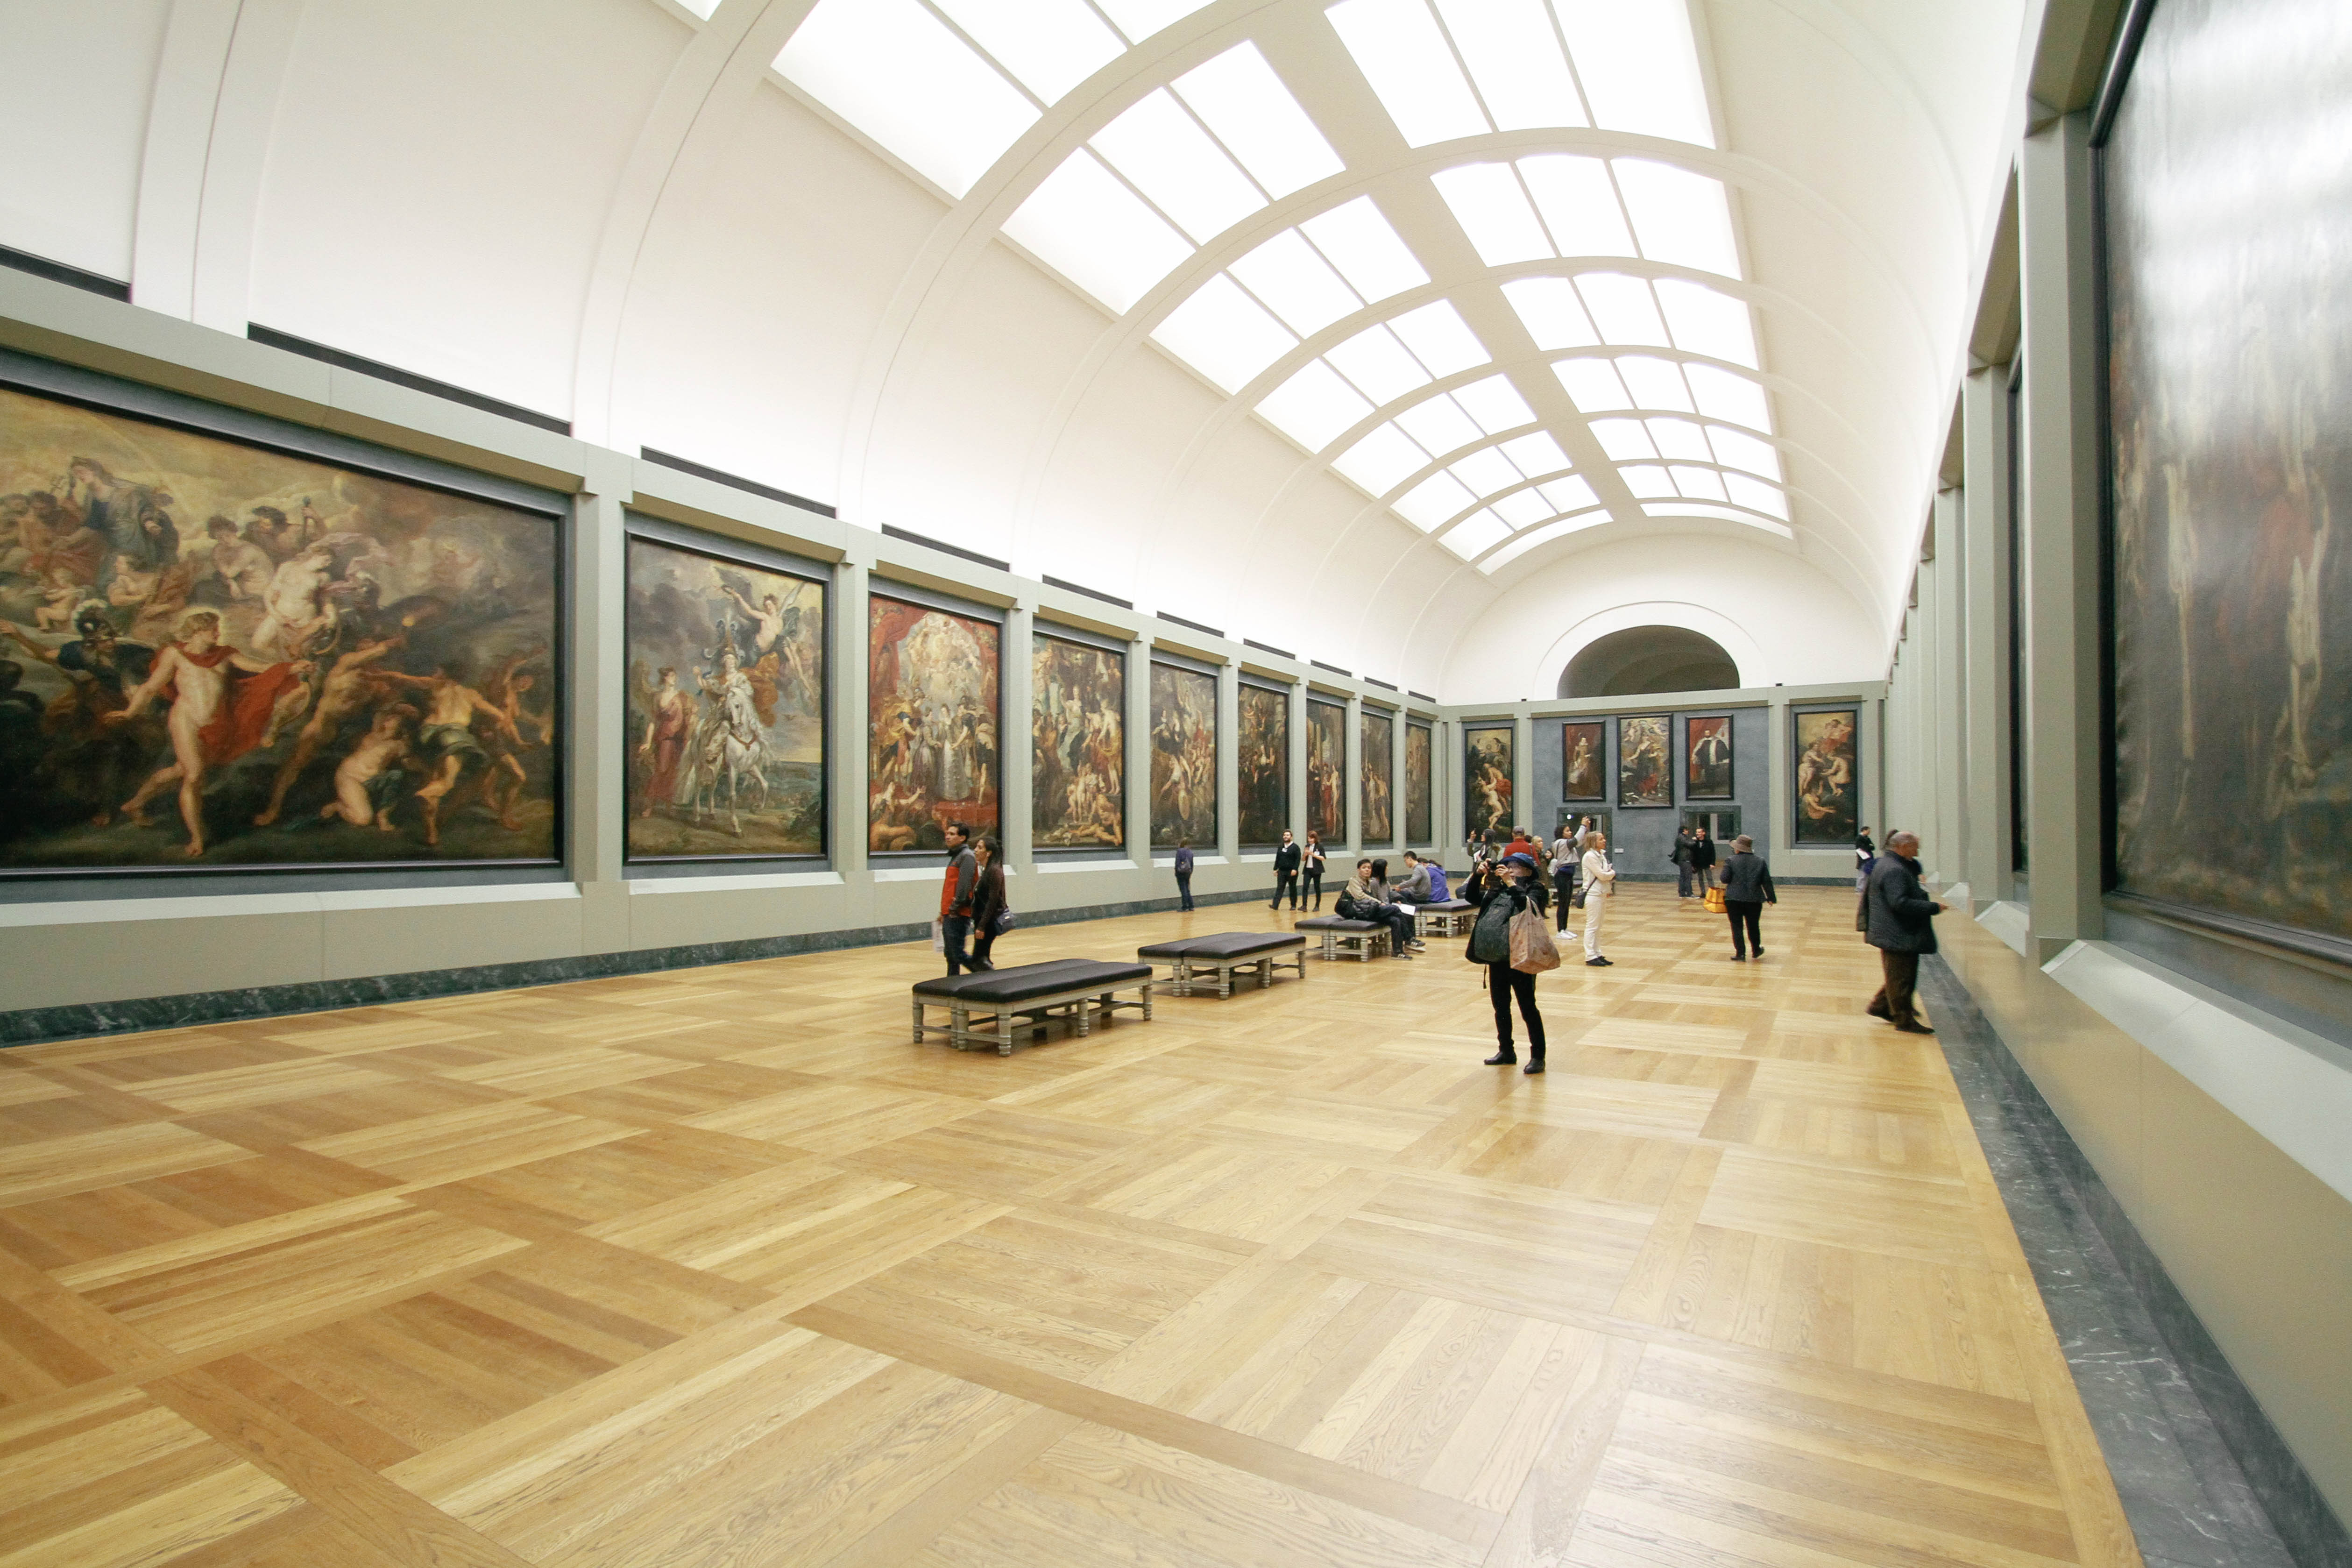 How to Submit Your Artwork to a Museum